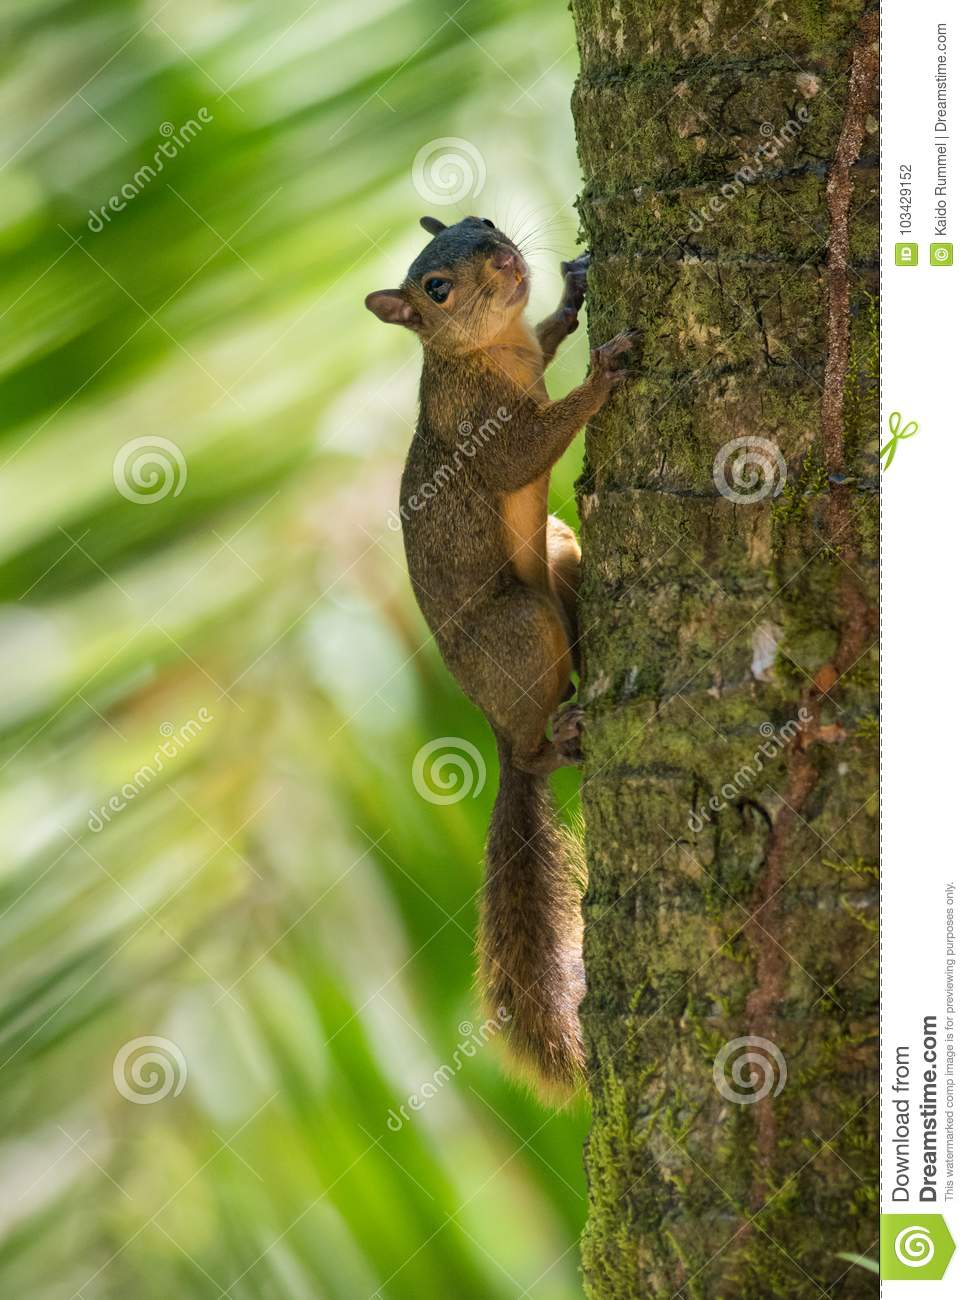 Download Red-tailed squirrel stock photo. Image of posing, cute - 103429152